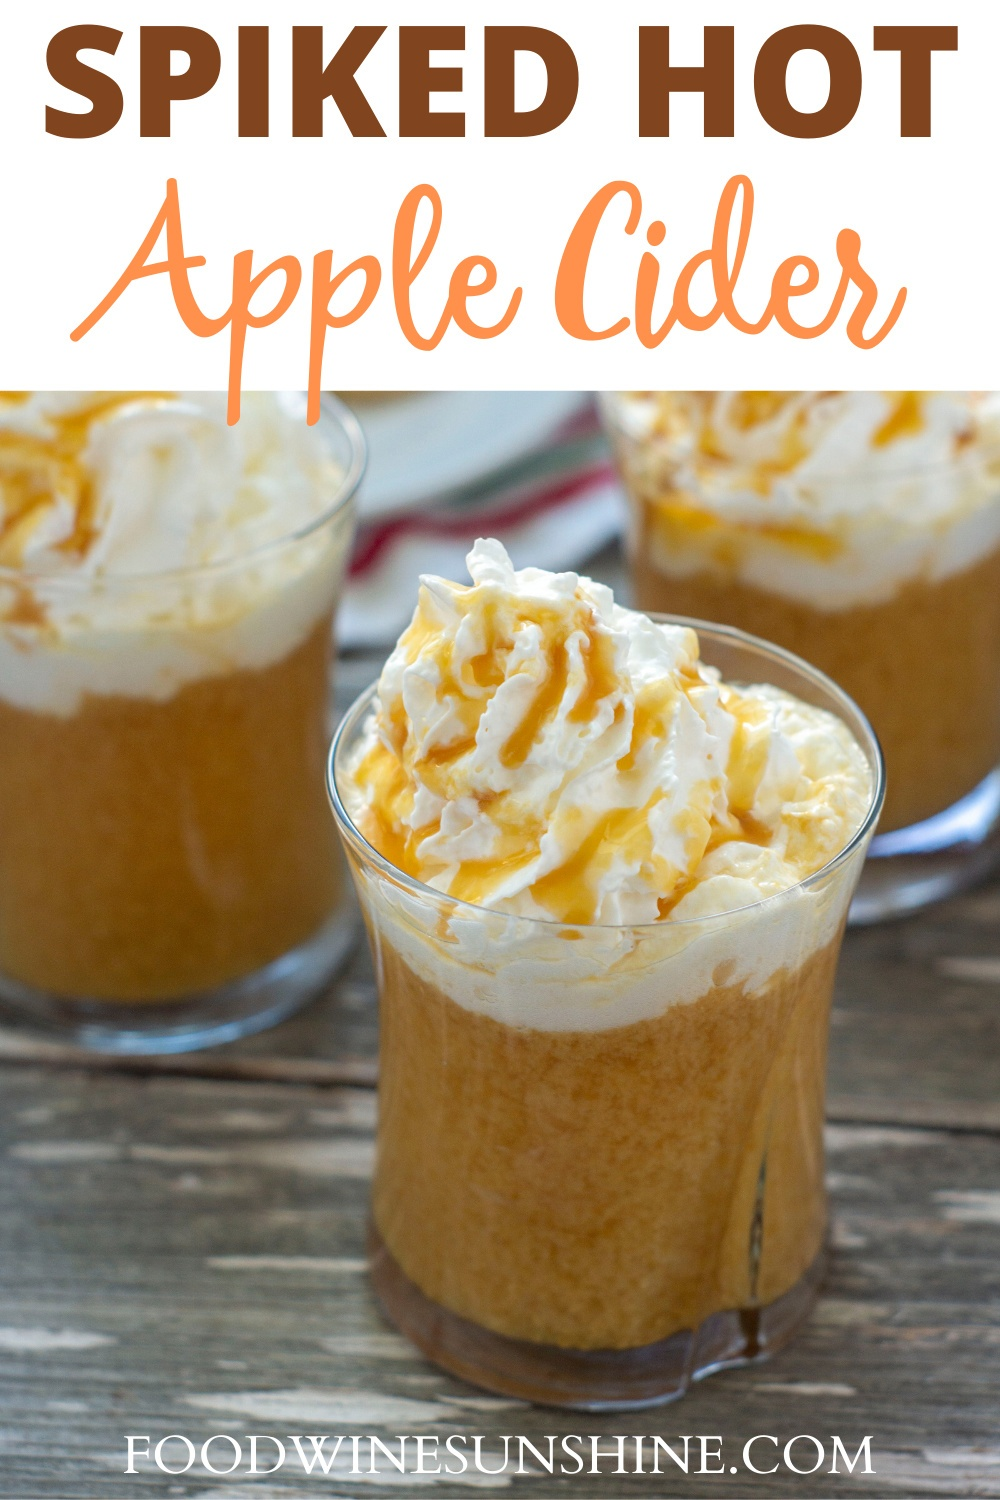 How To Make Spiked Hot Apple Cider